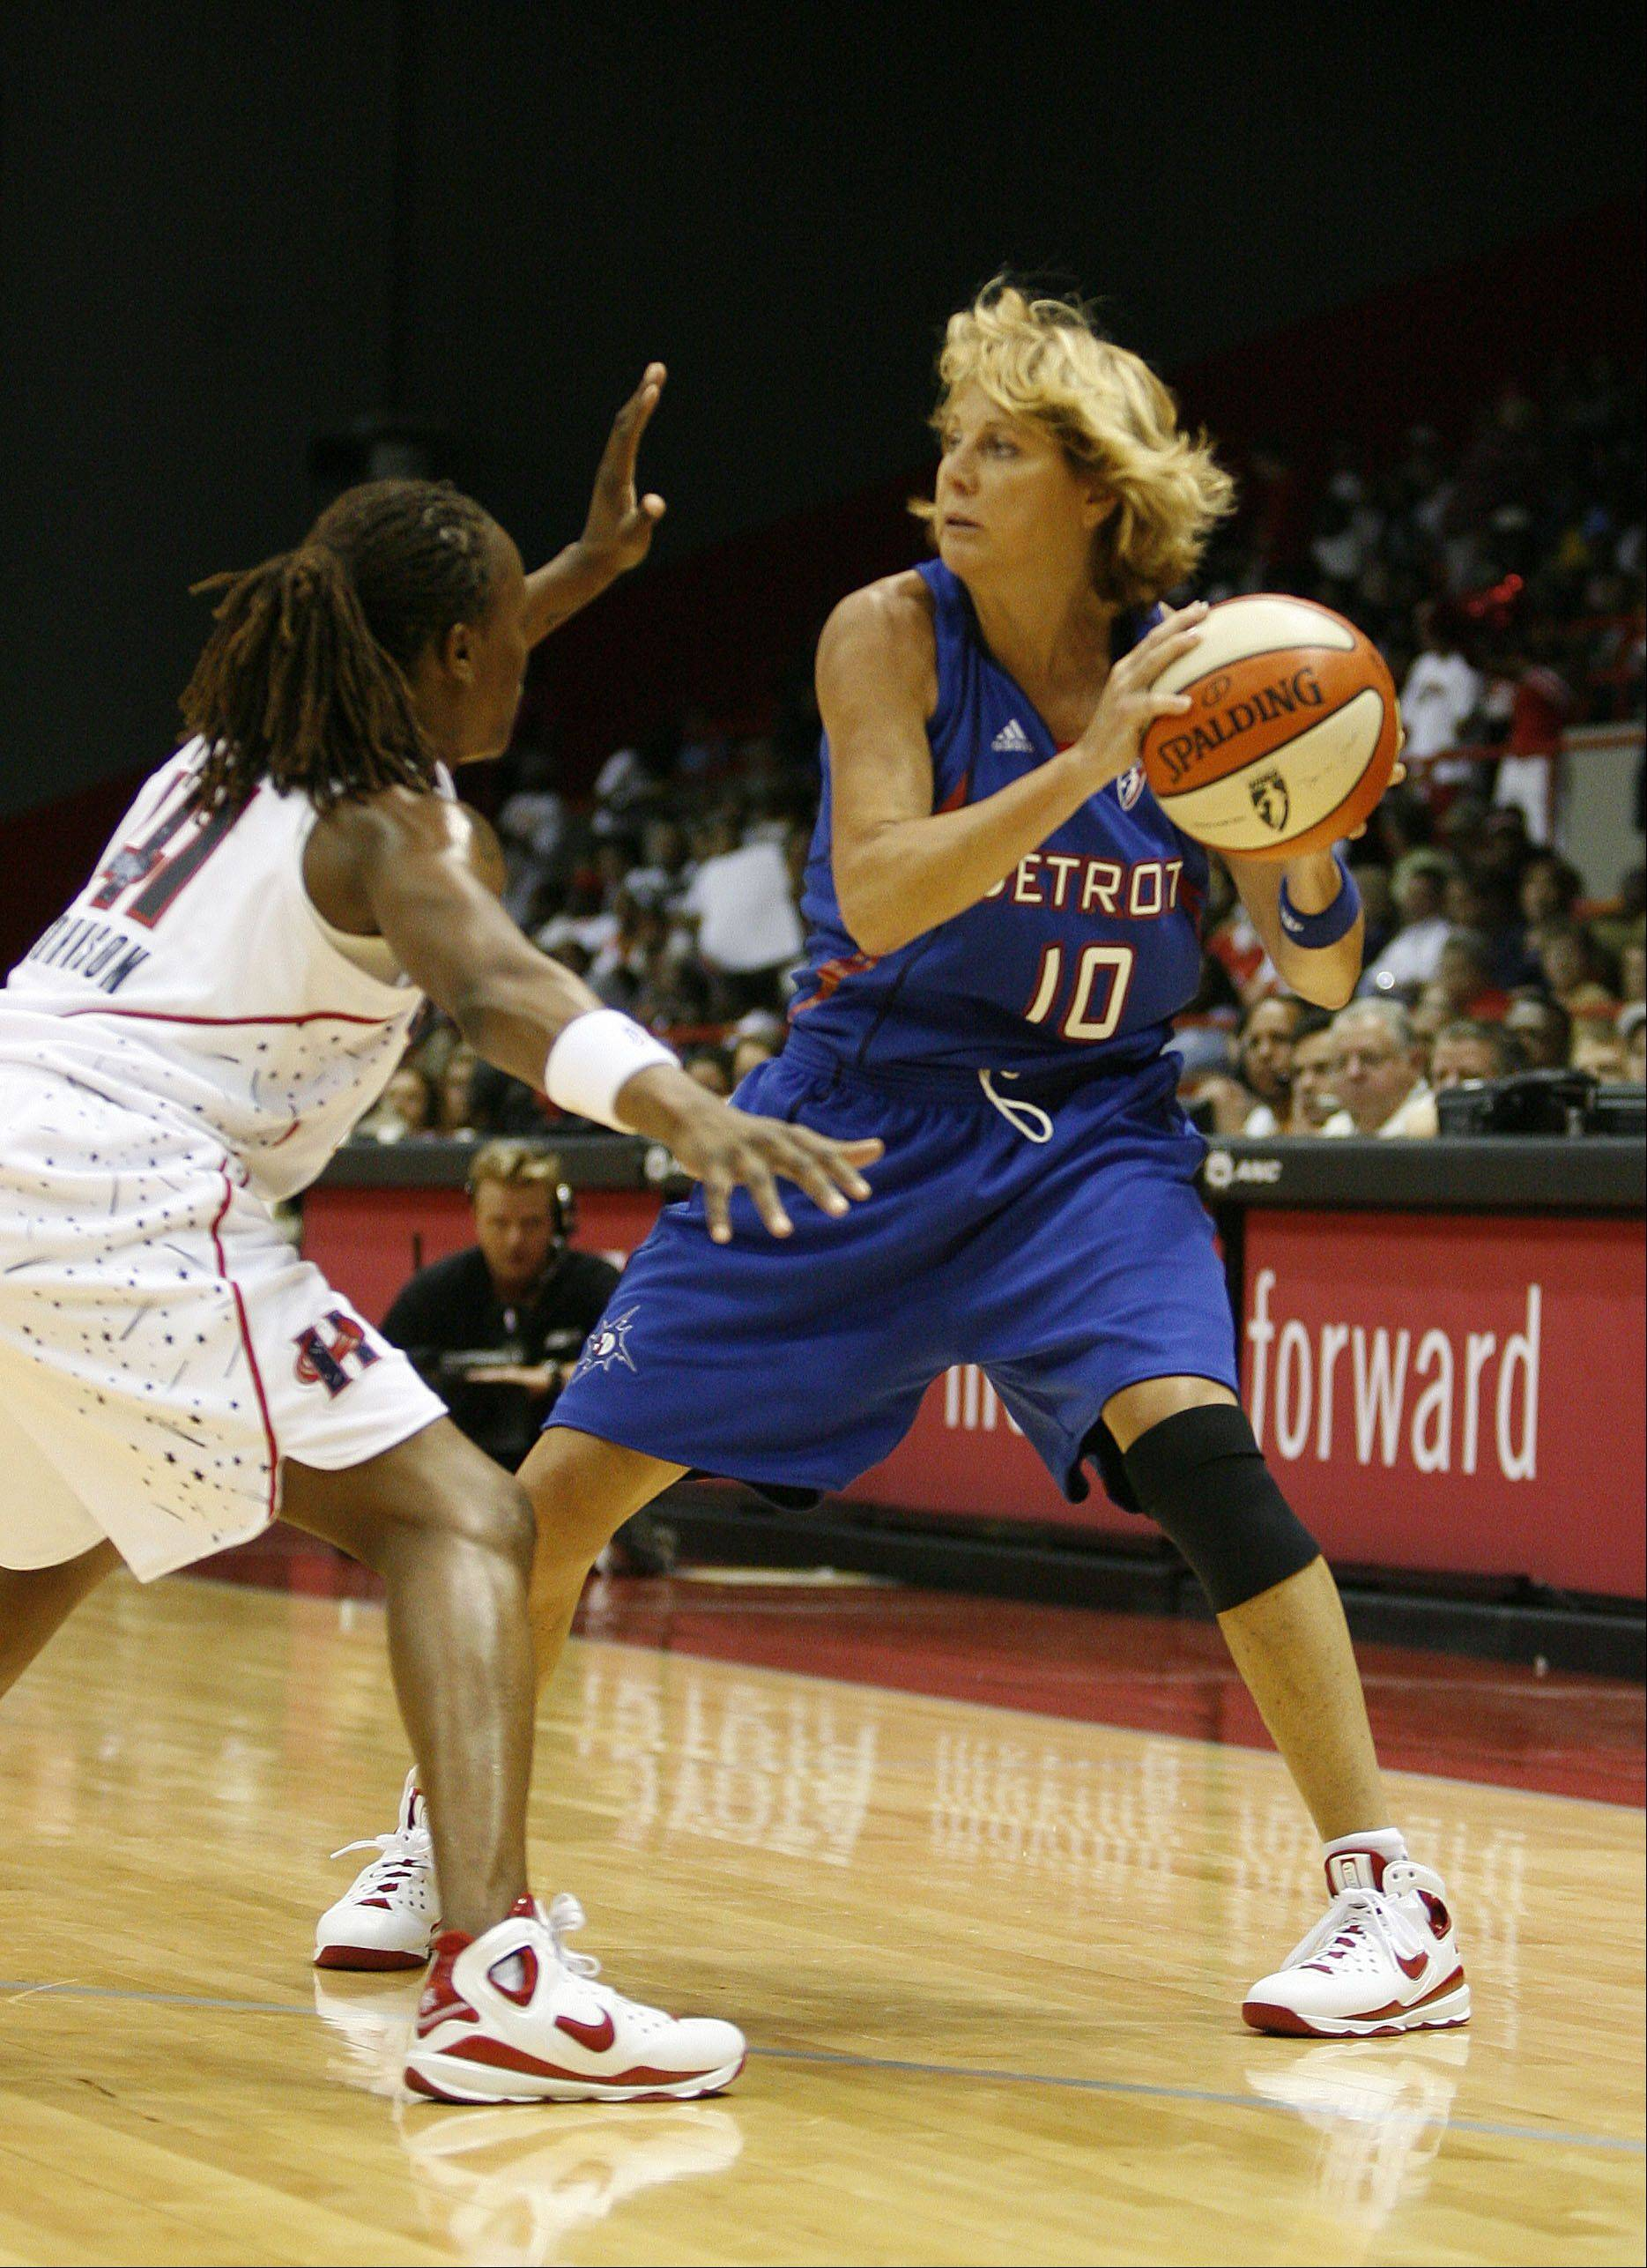 Nancy Lieberman, right, played in a WNBA game on July 24, 2008, at 50 years old. Lieberman signed a seven-day contract with the Detroit Shock and broke her own record as the oldest player in league history. She played one game and had 2 assists and turnovers against the Houston Comets, who beat the Shock 79�61.